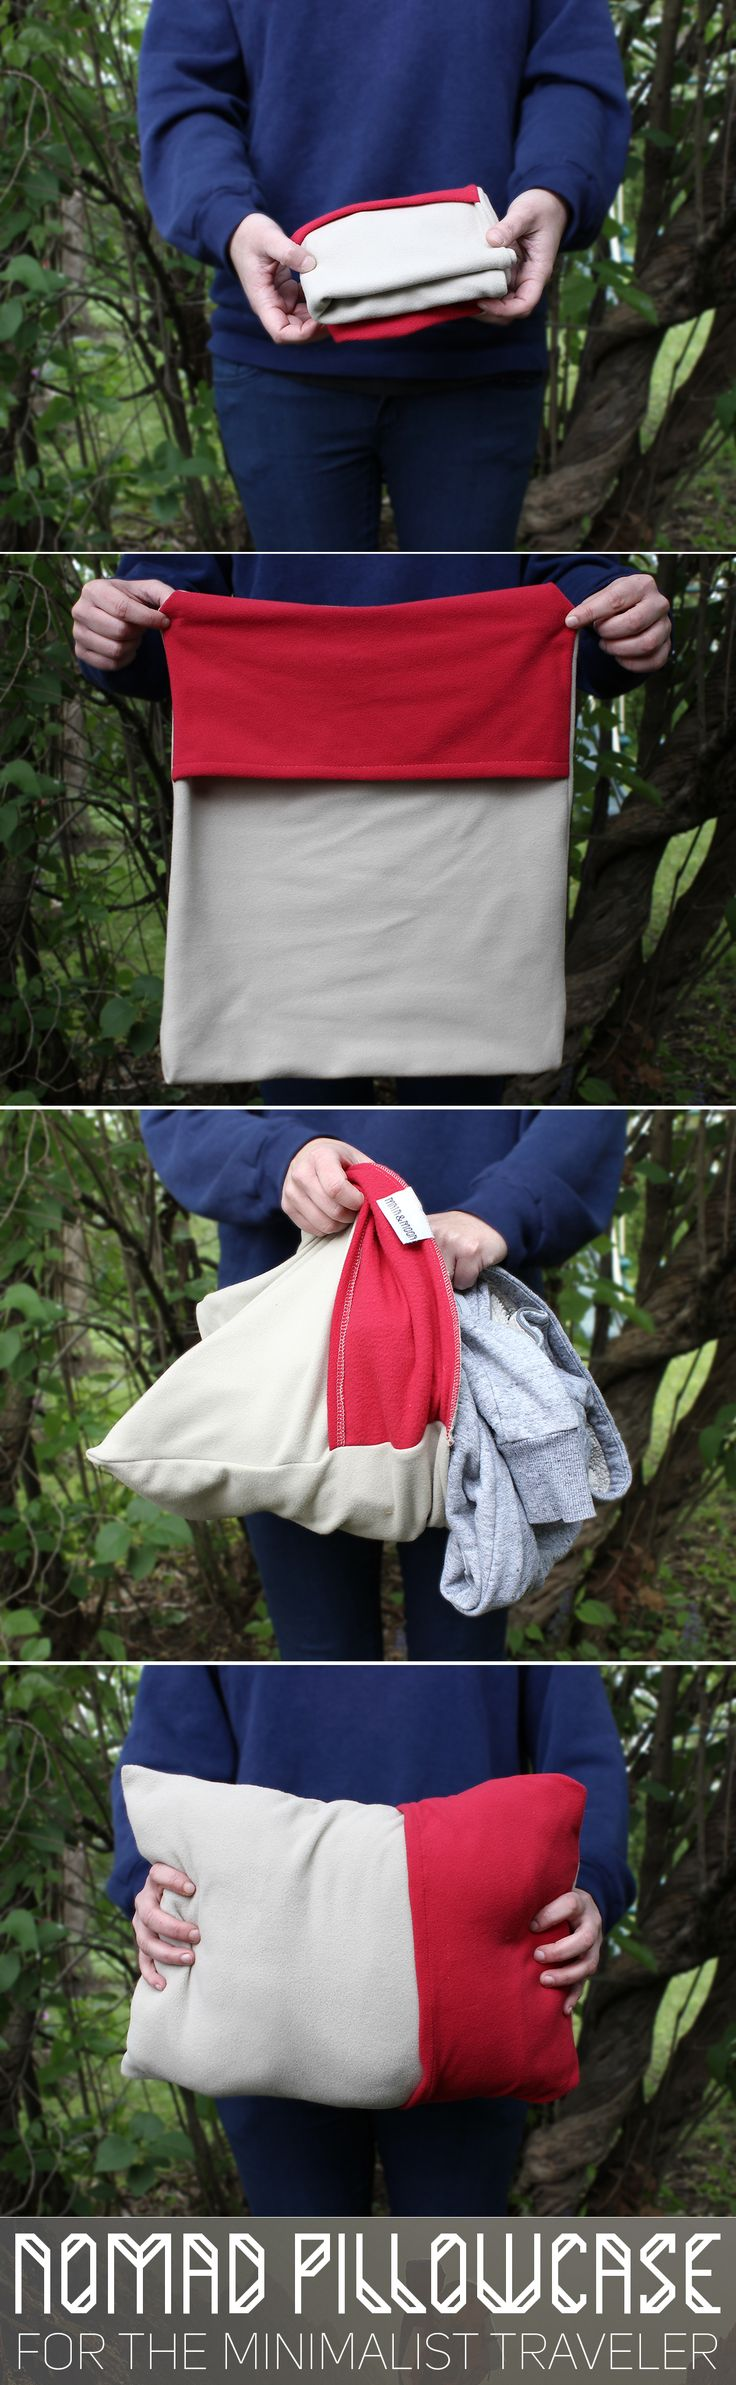 "The Nomad Pillow Case by Mntn & Moon folds up smaller than a t-shirt.  Stuff with clothing or jacket for an instant pillow.  Perfect for camping, airplanes or anywhere were space is limited. Made in USA  Measures: 17"" x 13"""